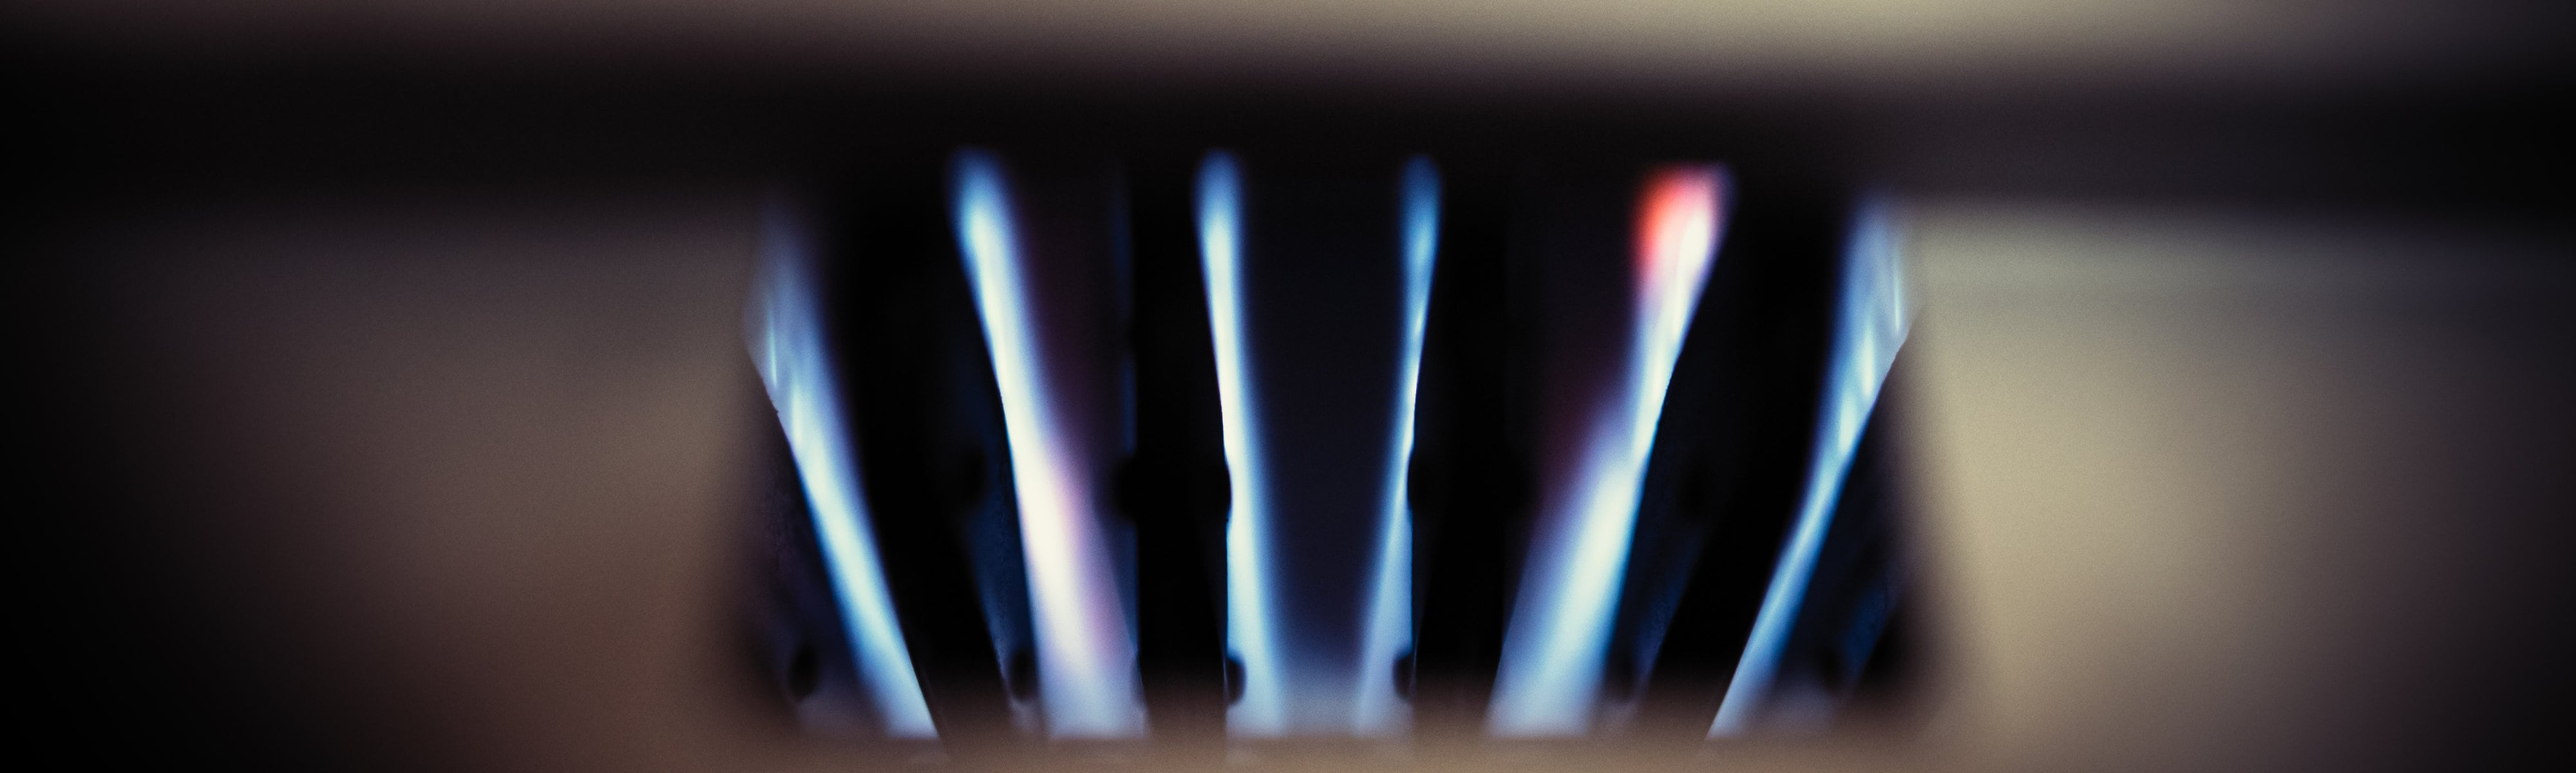 Blue flames from a gas boiler.